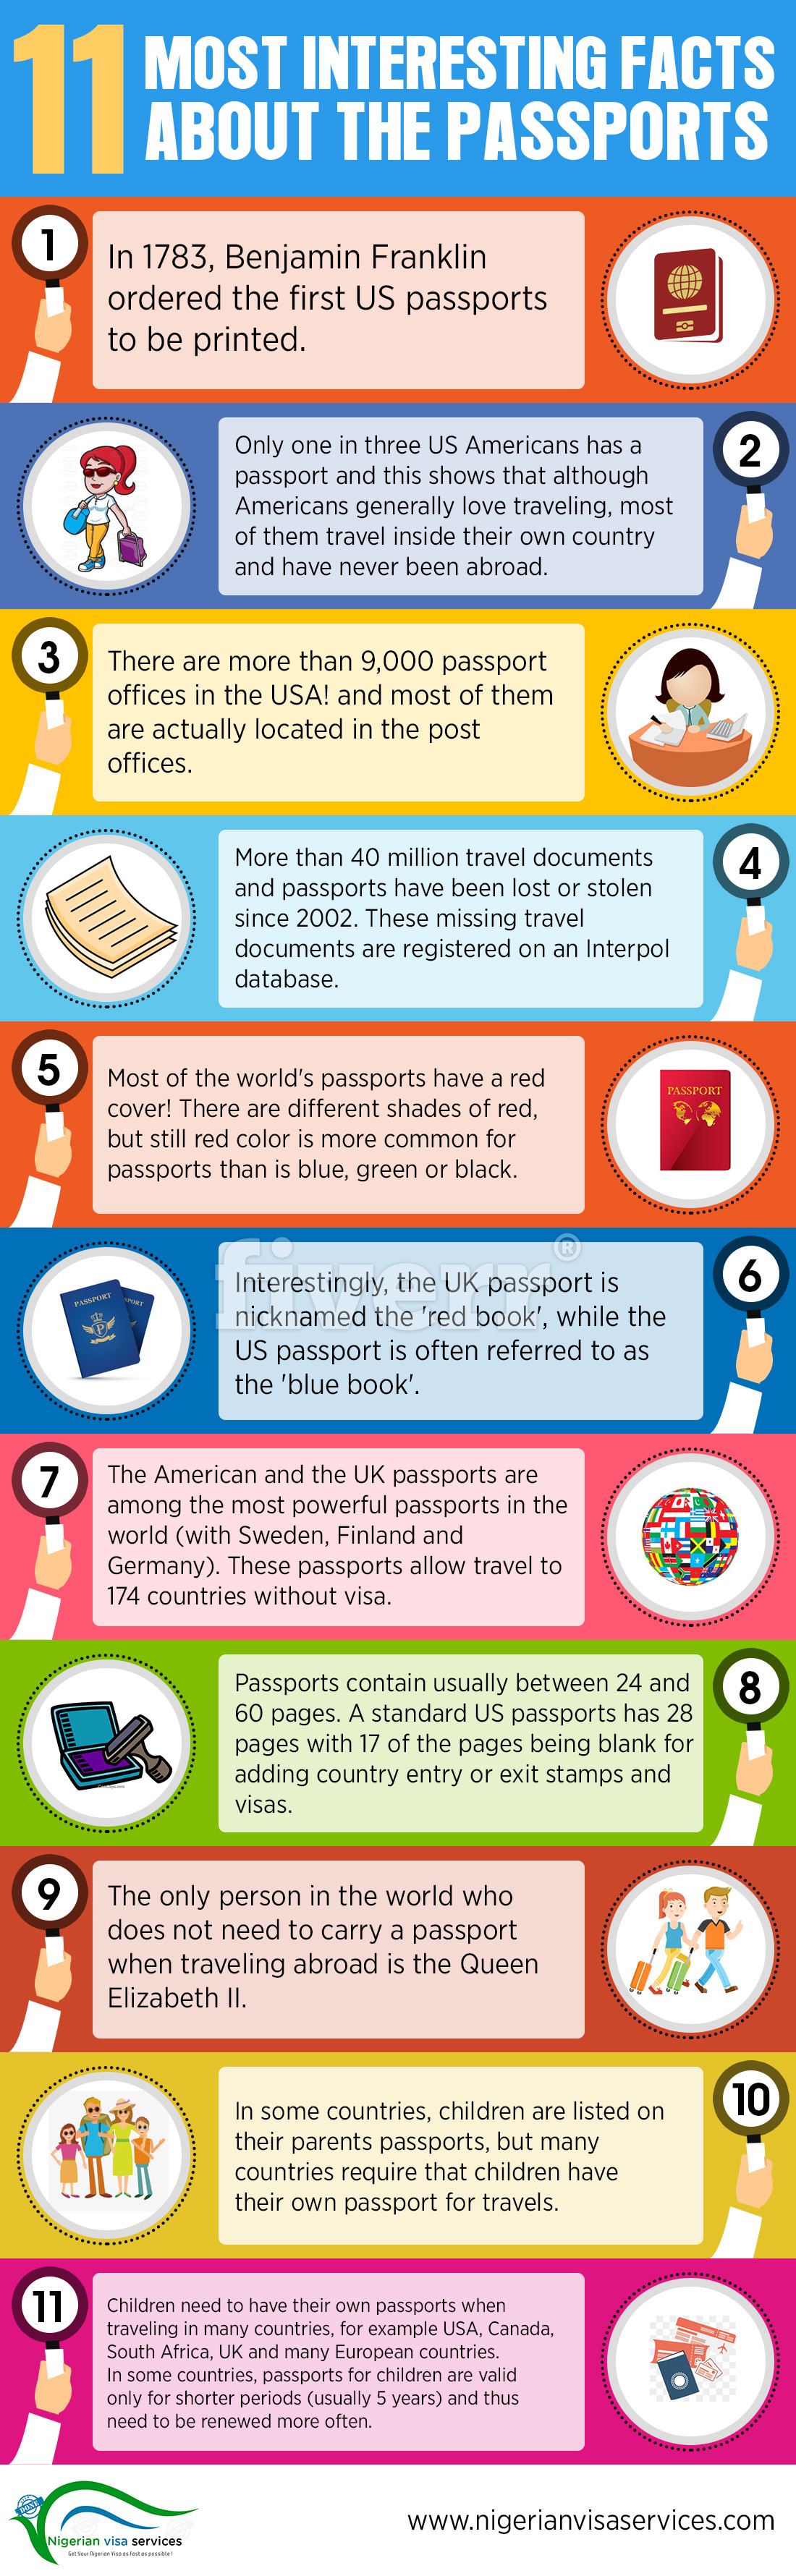 11 Most Interesting Facts About The Passports